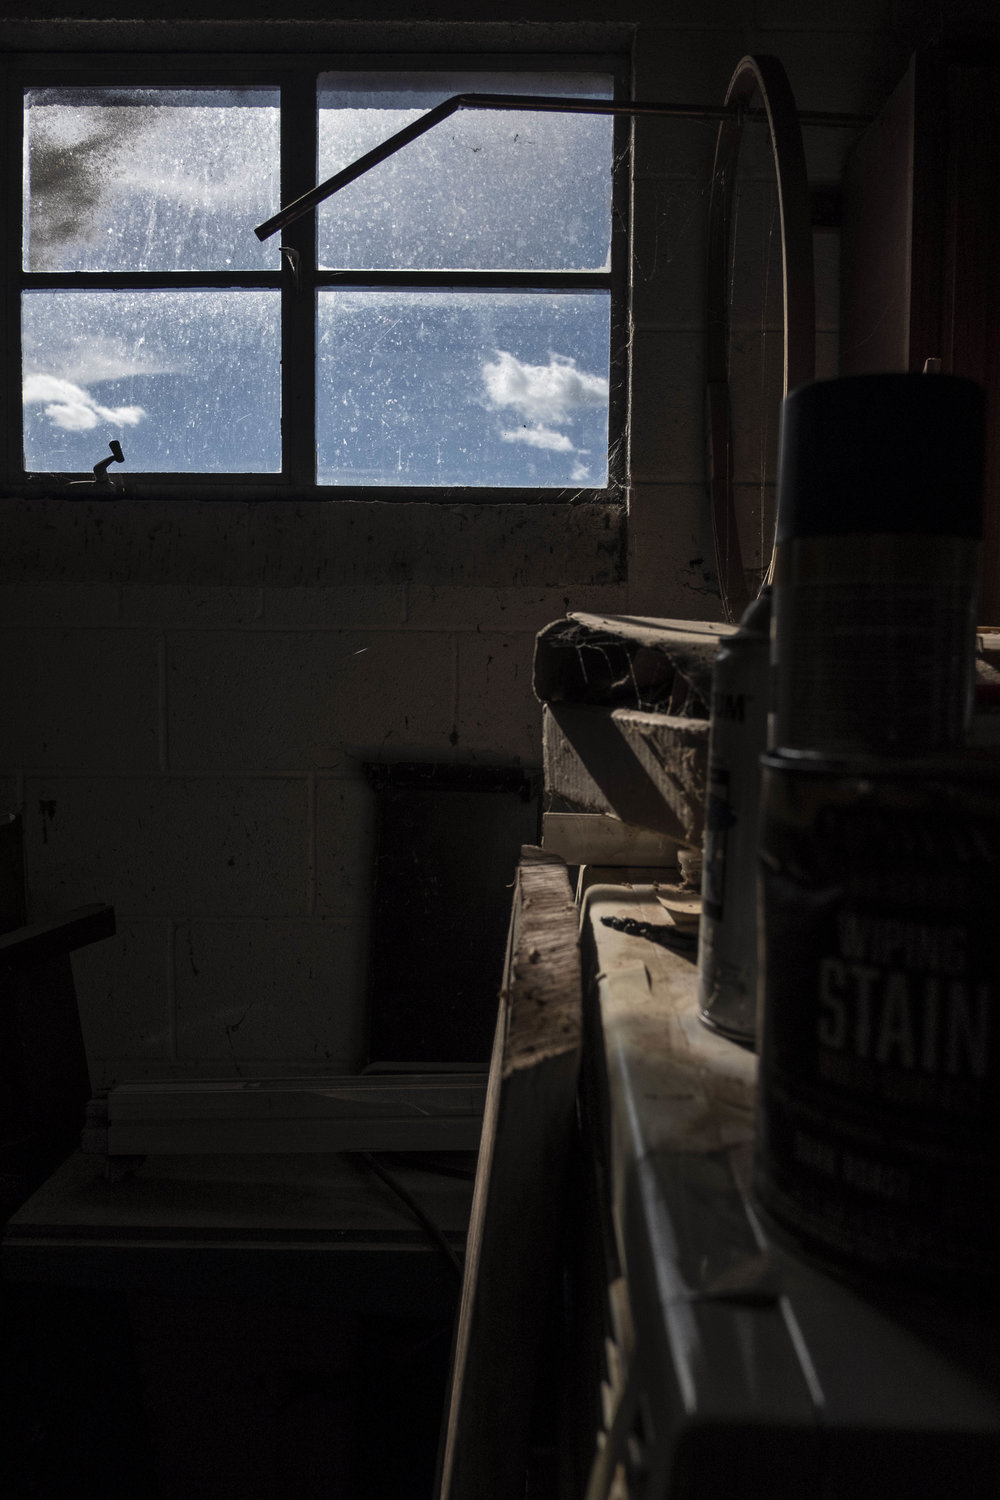 I love a dusty carpentry space. My dad's been a carpenter his whole life and the smell of sawdust is so nostalgic.